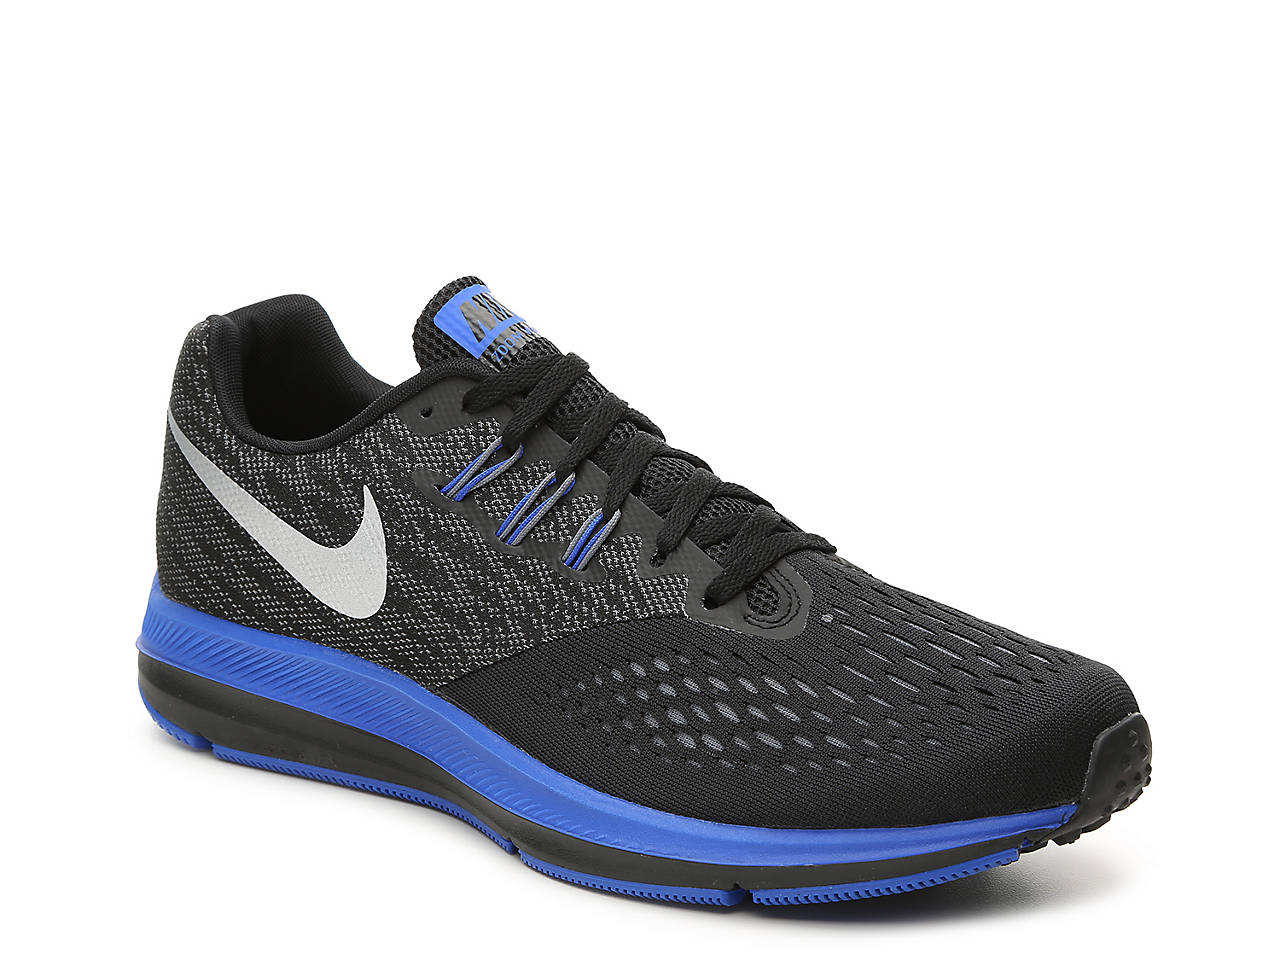 06a2d4c9897c6 Nike Zoom Winflo 4 Lightweight Running Shoe - Men s Men s Shoes